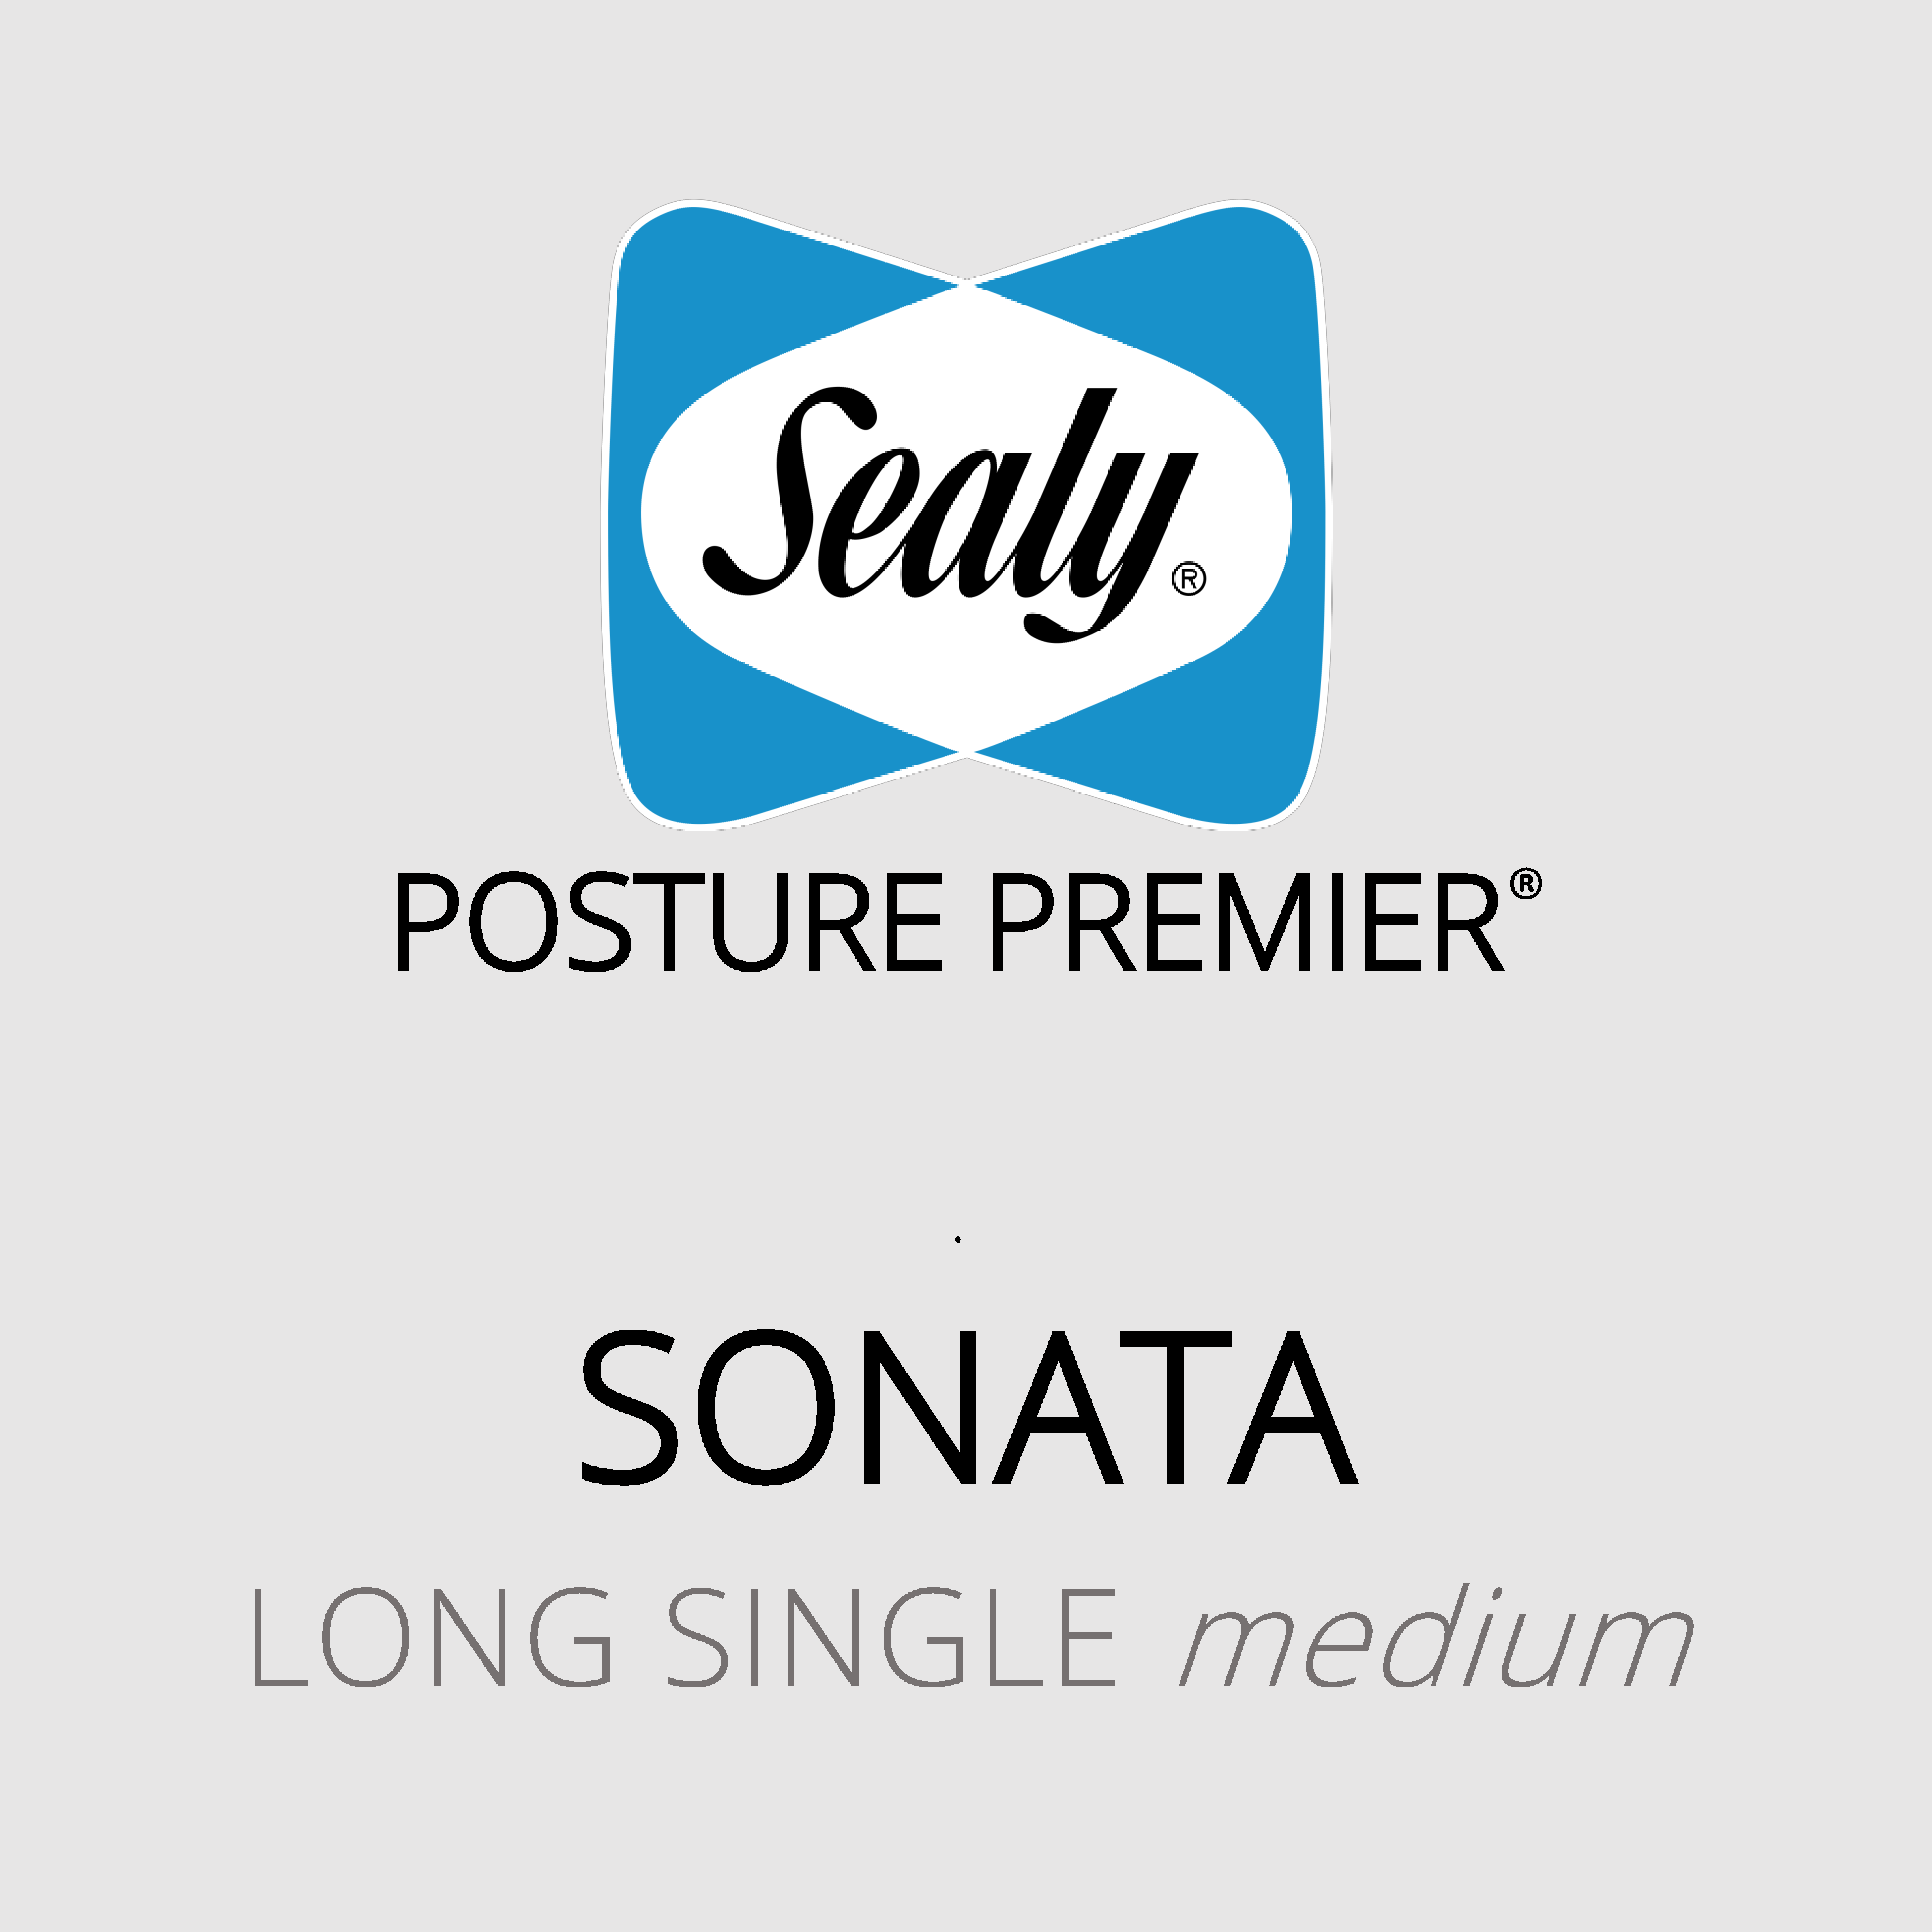 Sealy Posture Premier – Sonata – Long Single Medium Mattress